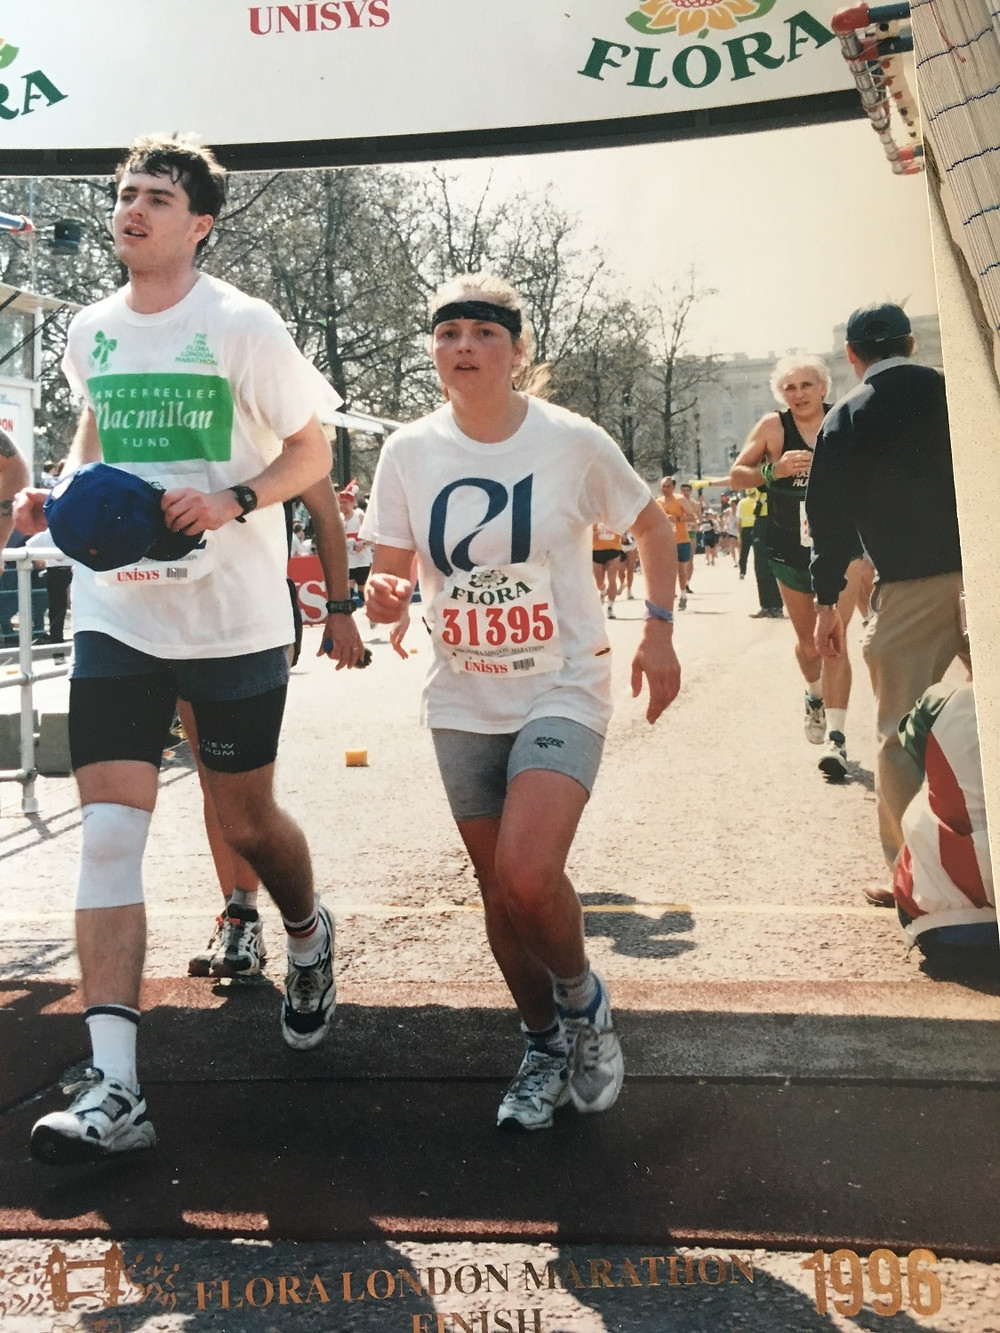 London Marathon1996 - my second marathon.